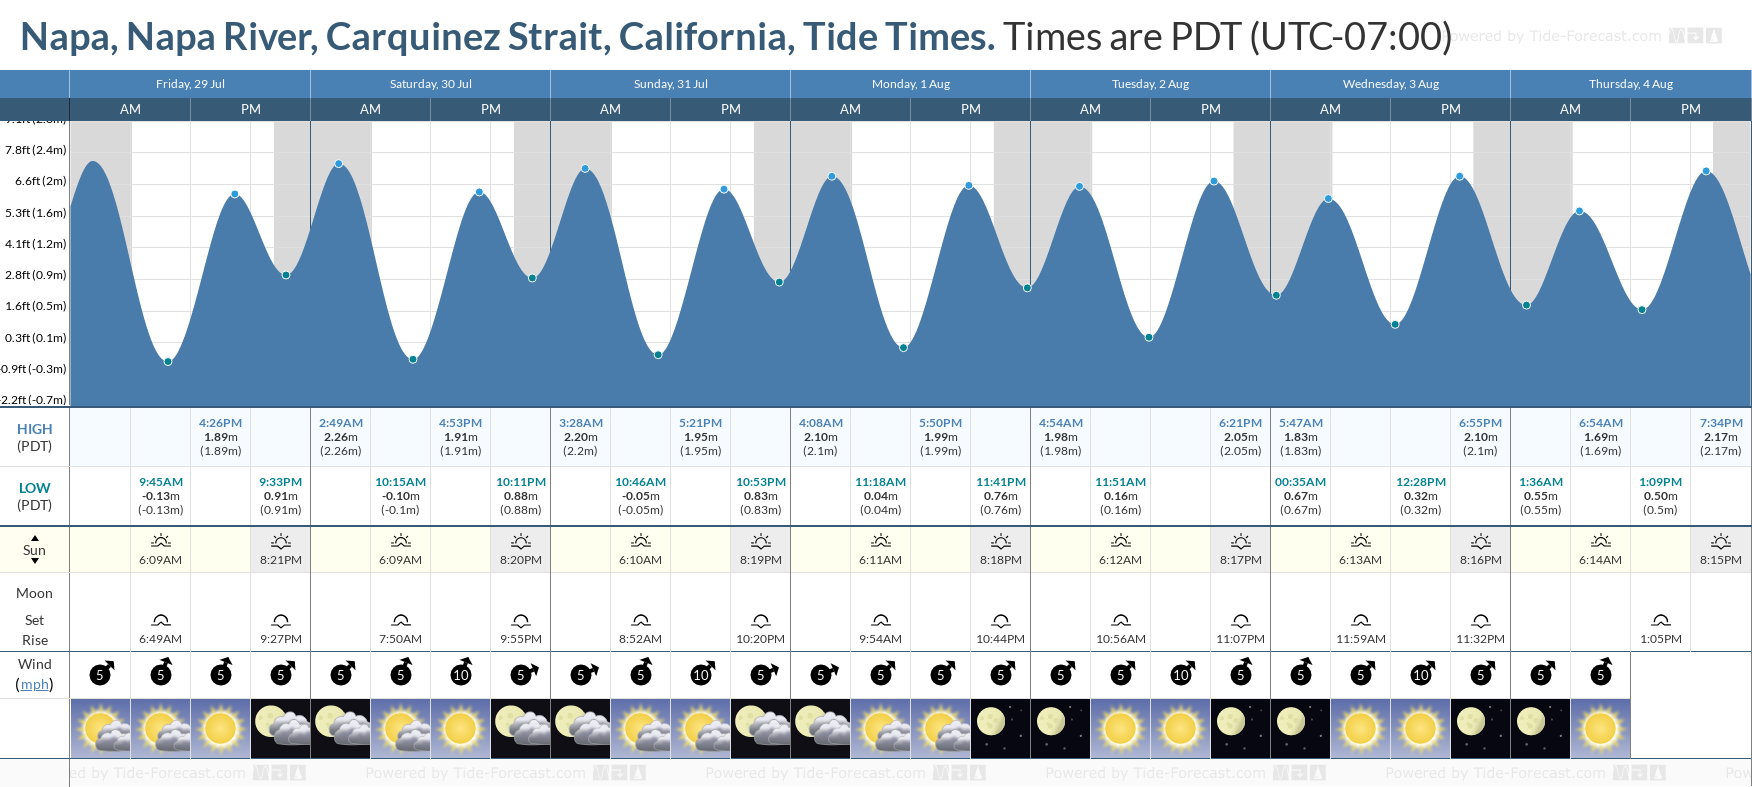 Napa, Napa River, Carquinez Strait, California Tide Chart including high and low tide tide times for the next 7 days